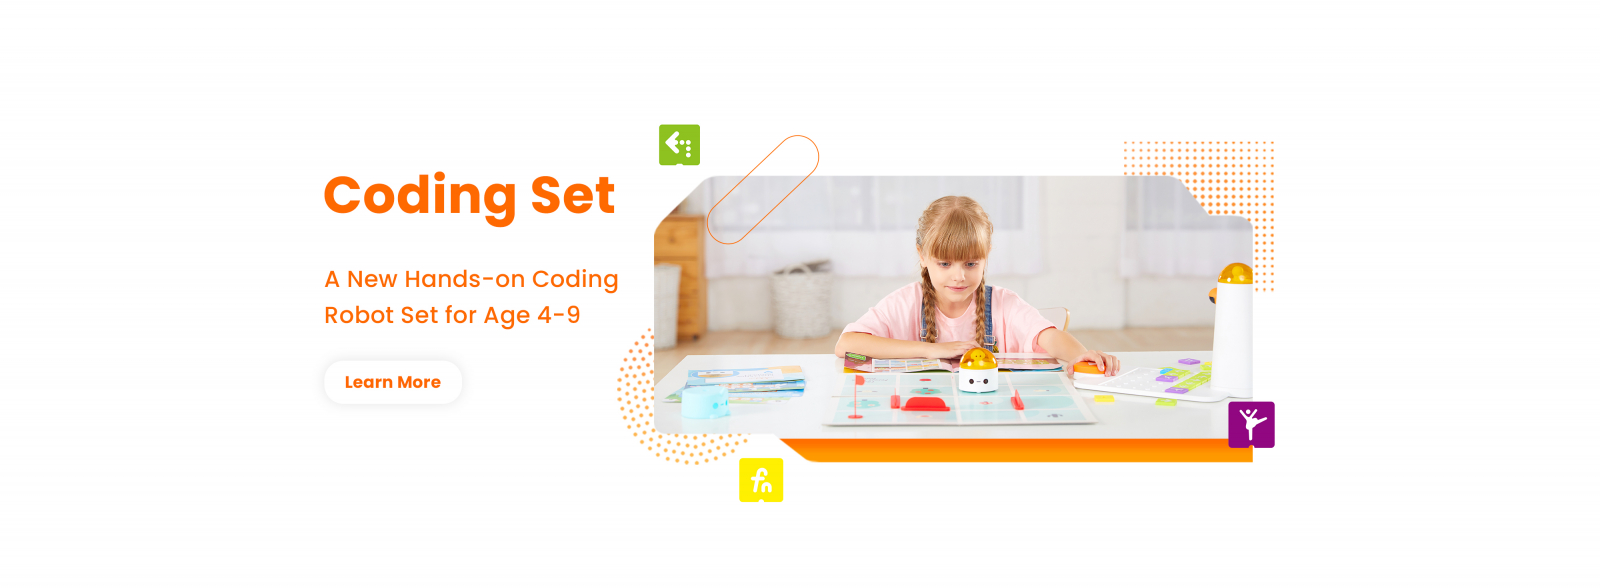 Matatalab Coding Set - Coding Kits for Kids - Matatalab